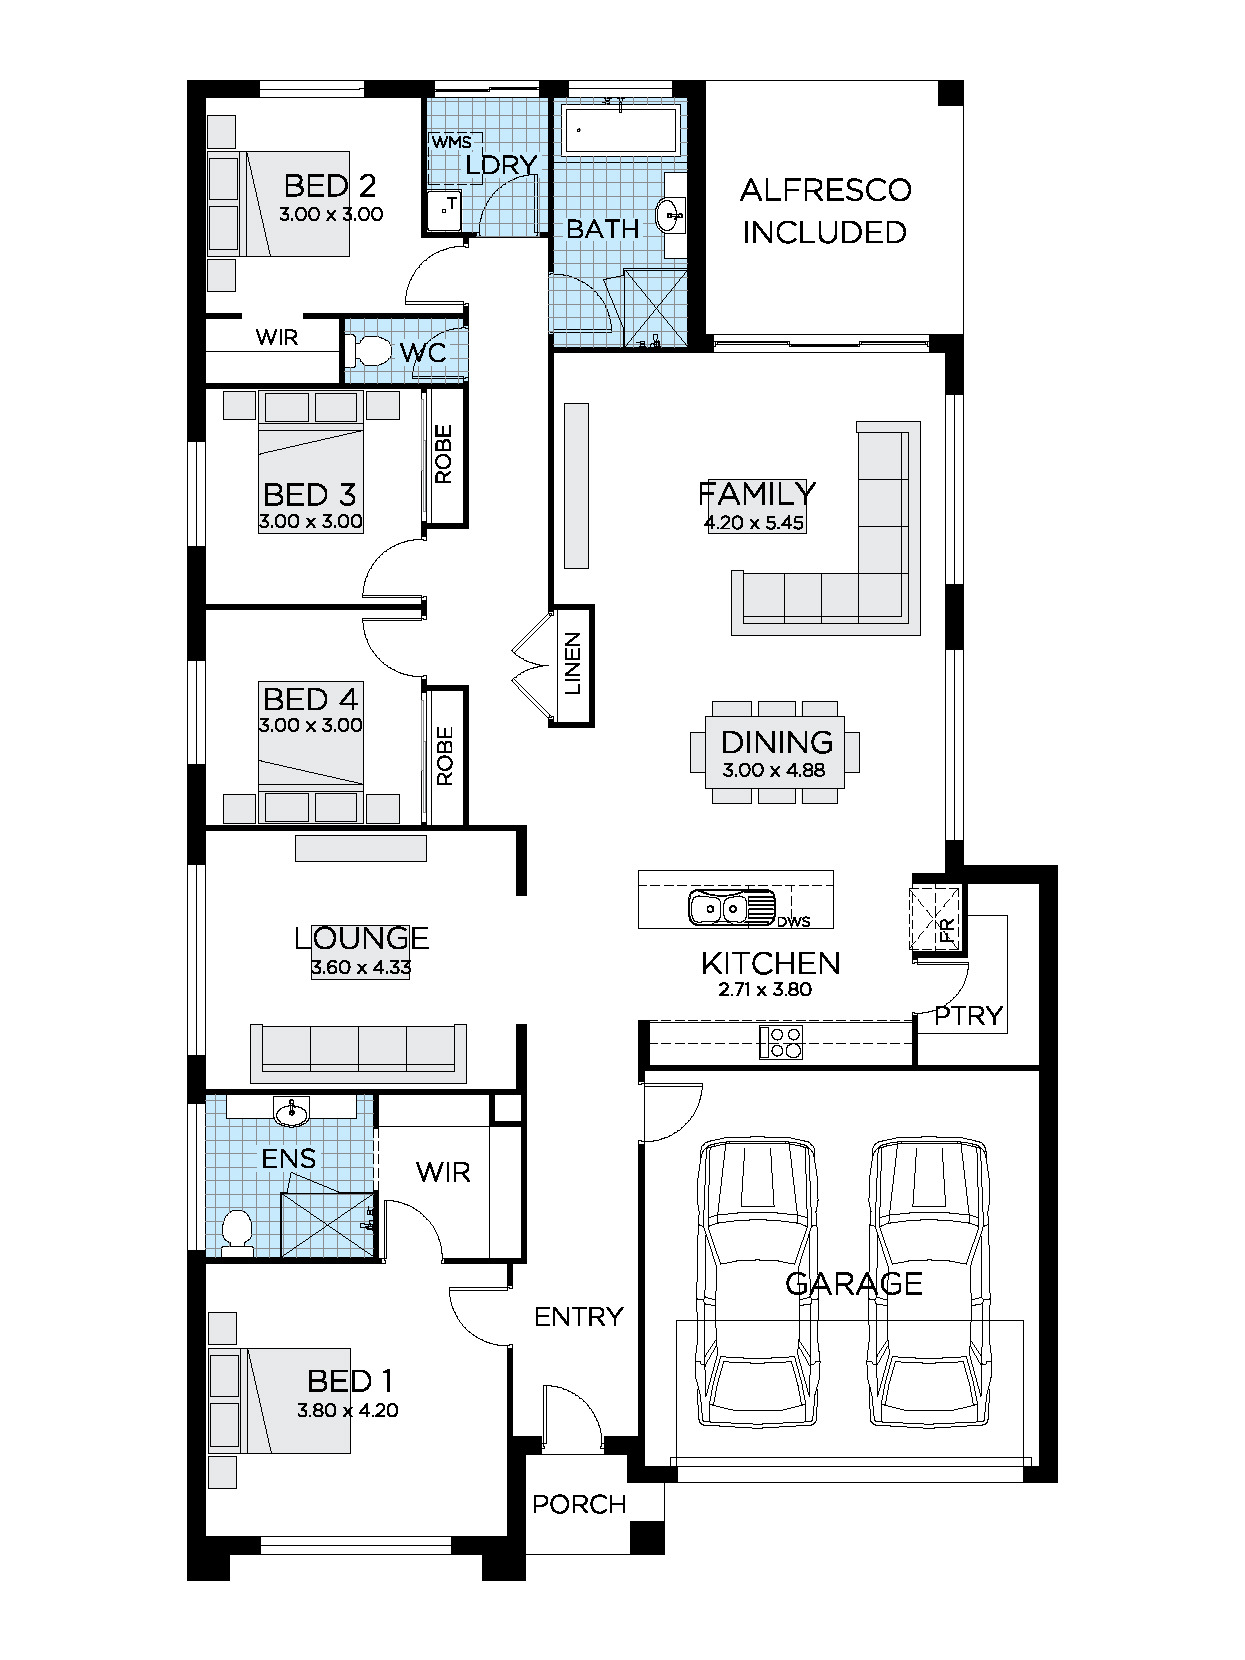 Houses Designs and Floor Plans Inspirational Helix Home Design 4 Bedroom House Design